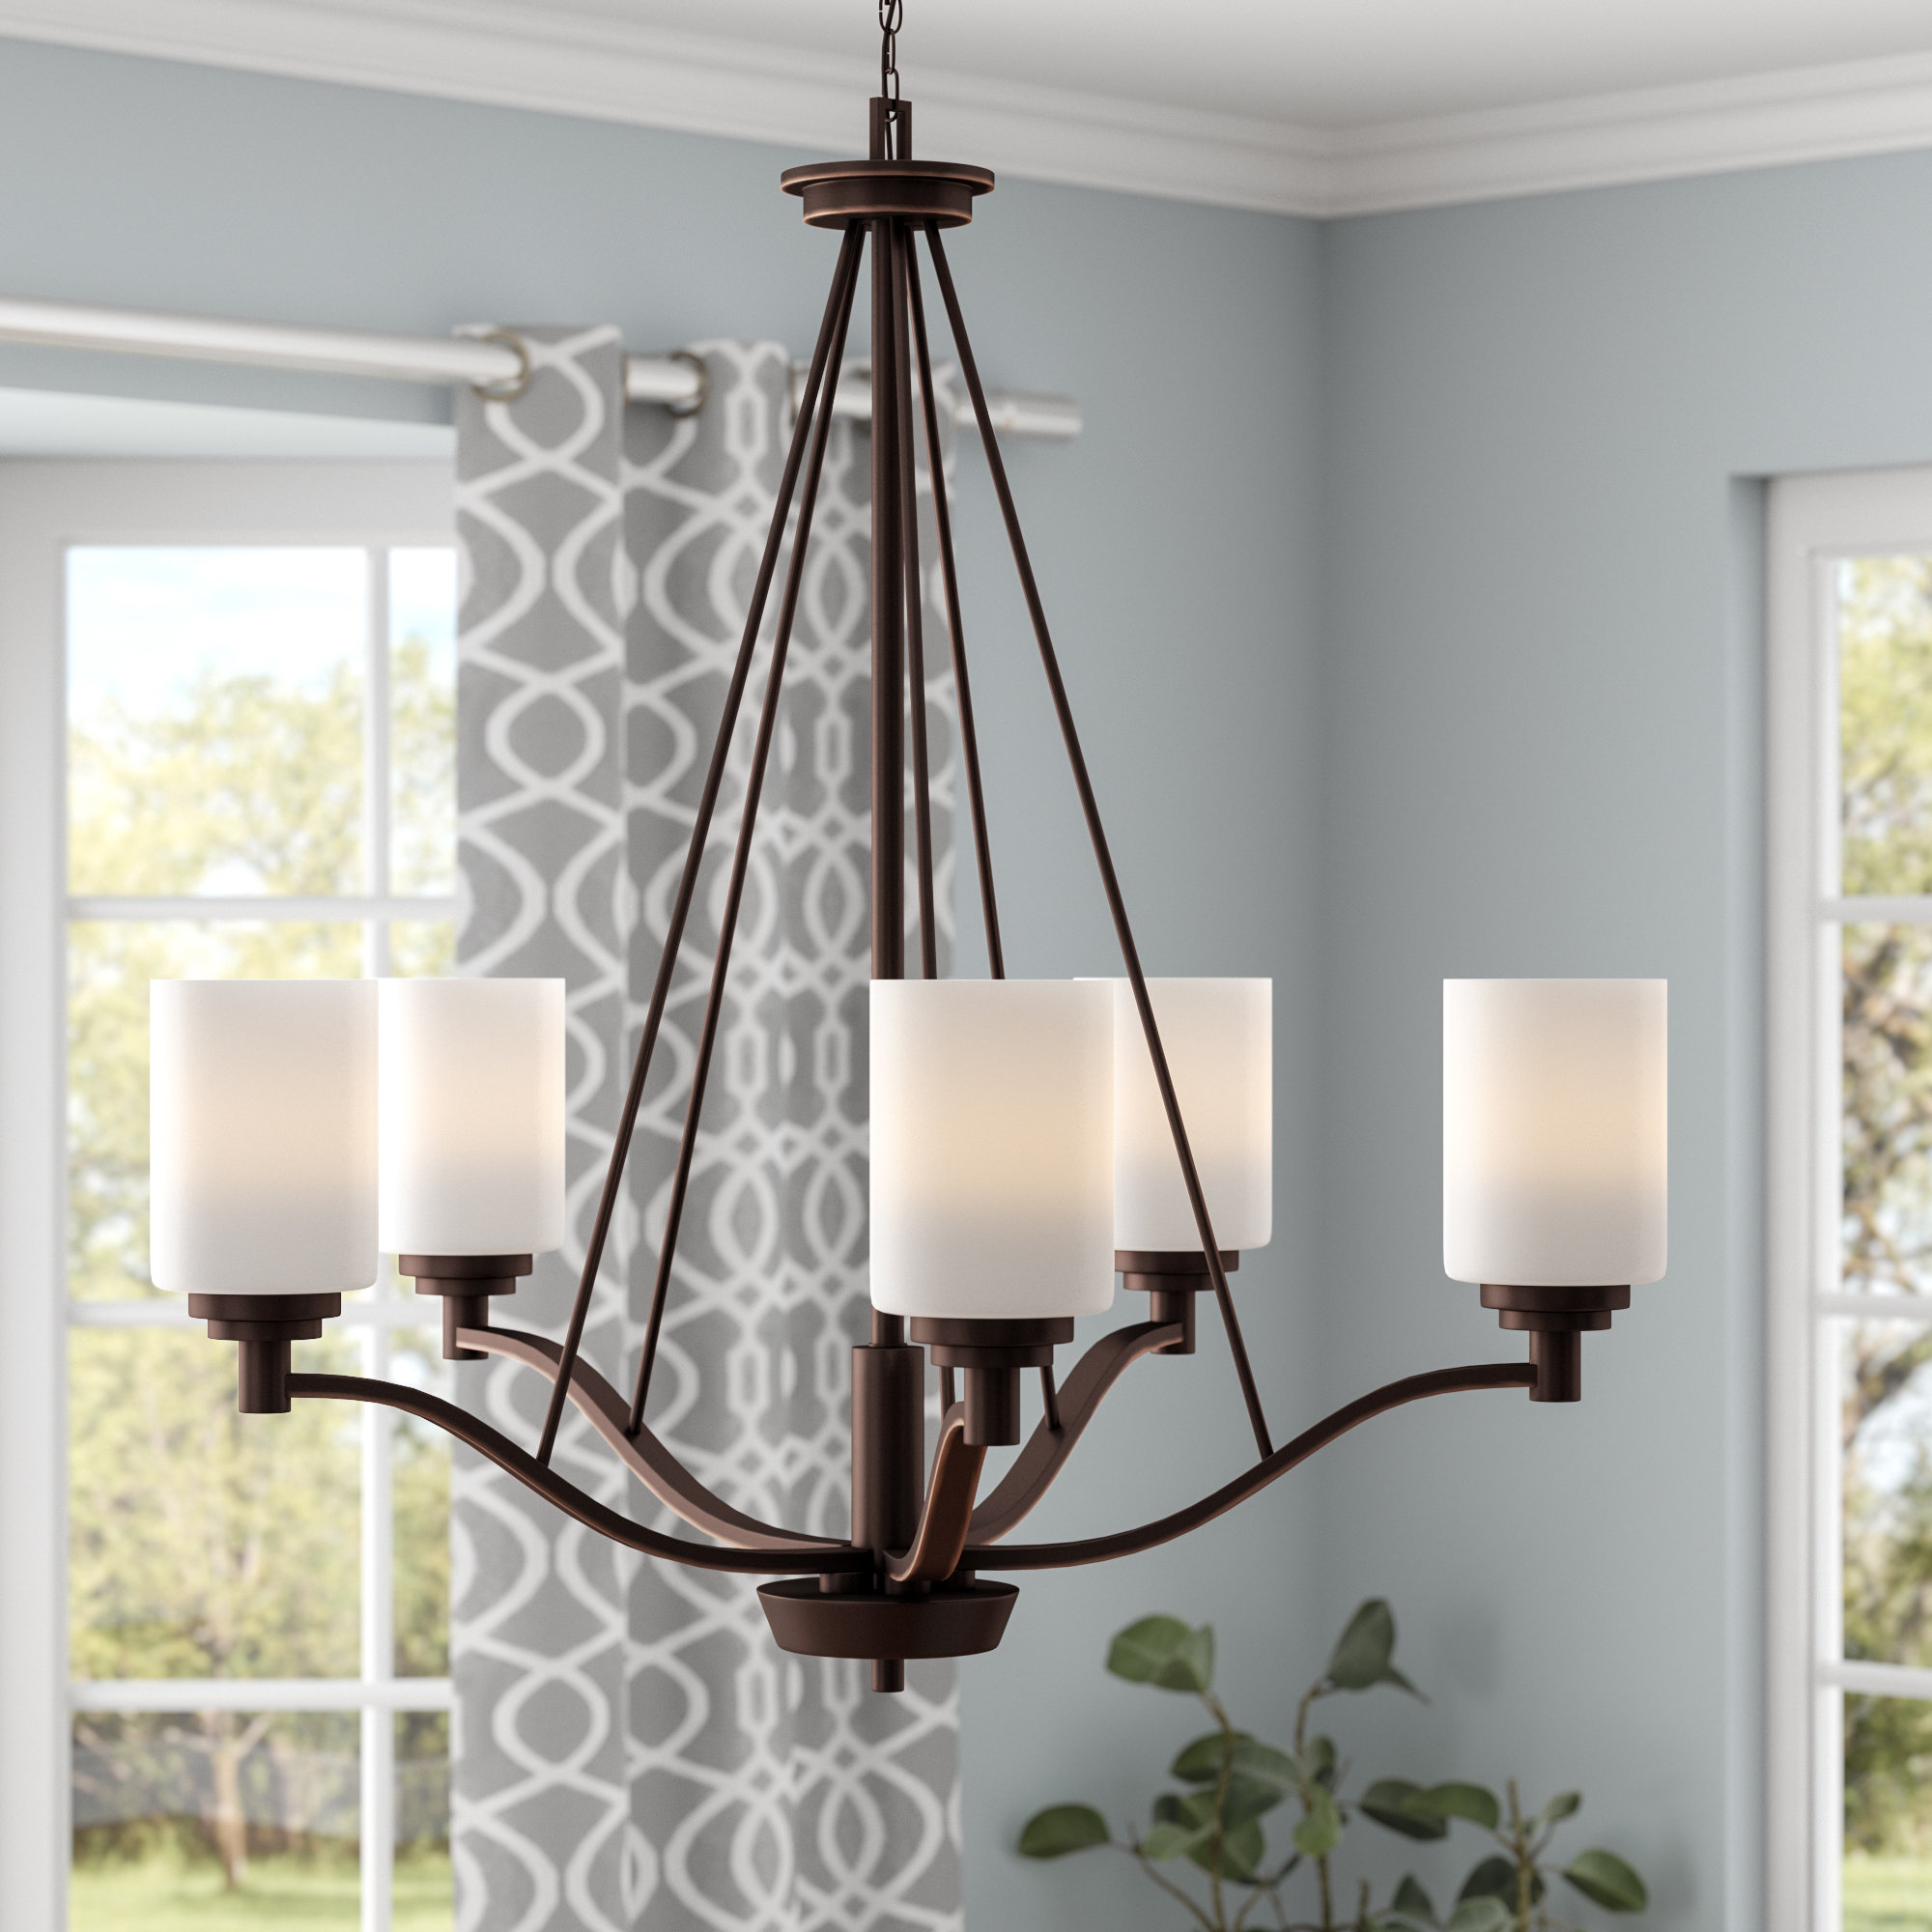 Hester 5 Light Shaded Chandelier Throughout Favorite Newent 5 Light Shaded Chandeliers (View 8 of 25)